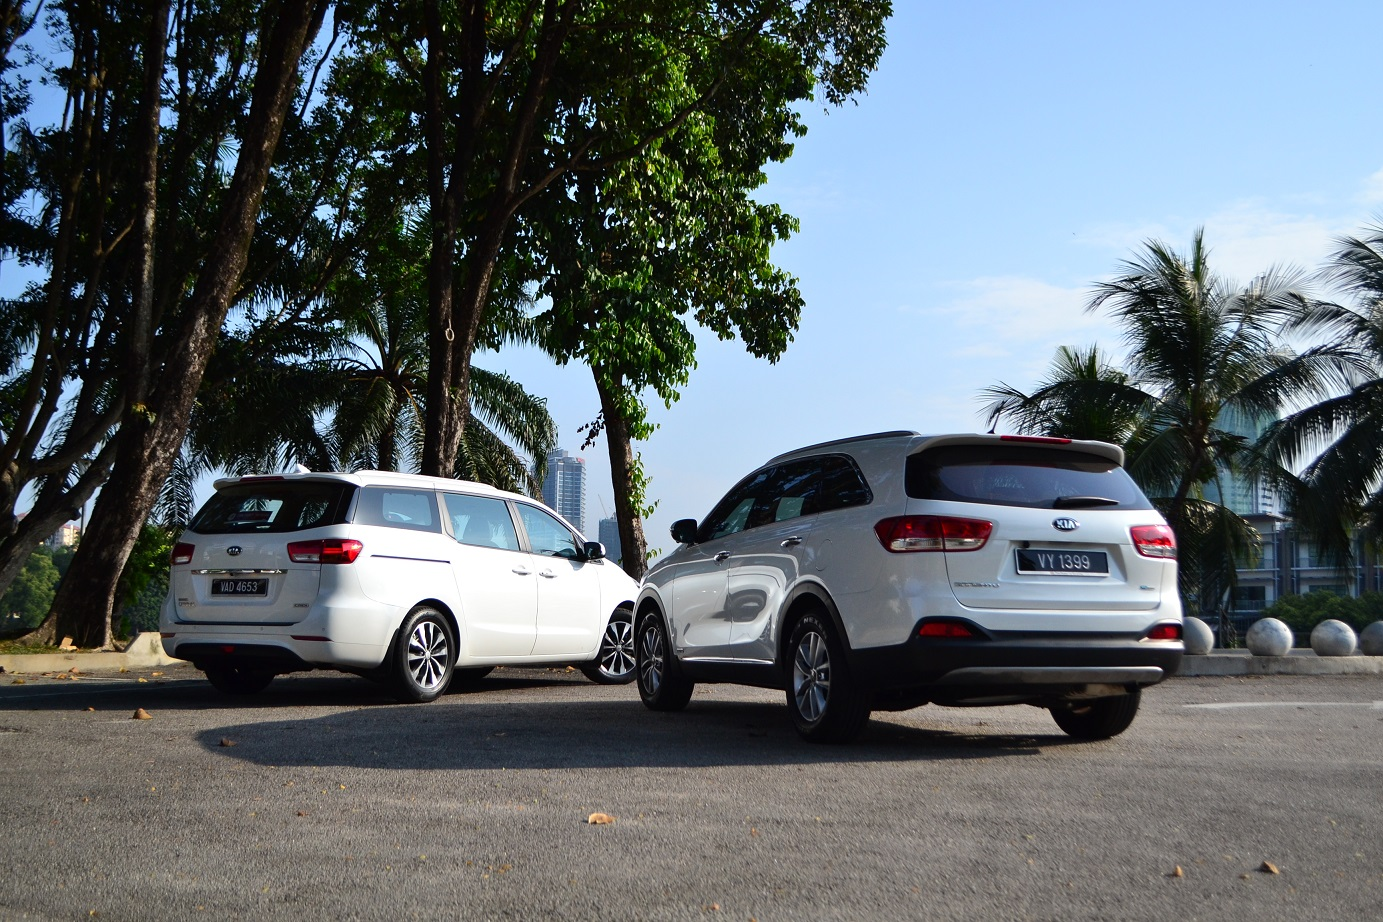 hight resolution of from a convenience point of view the powered sliding doors of the mpv carnival is much more preferred compared to the normal doors of the sorento